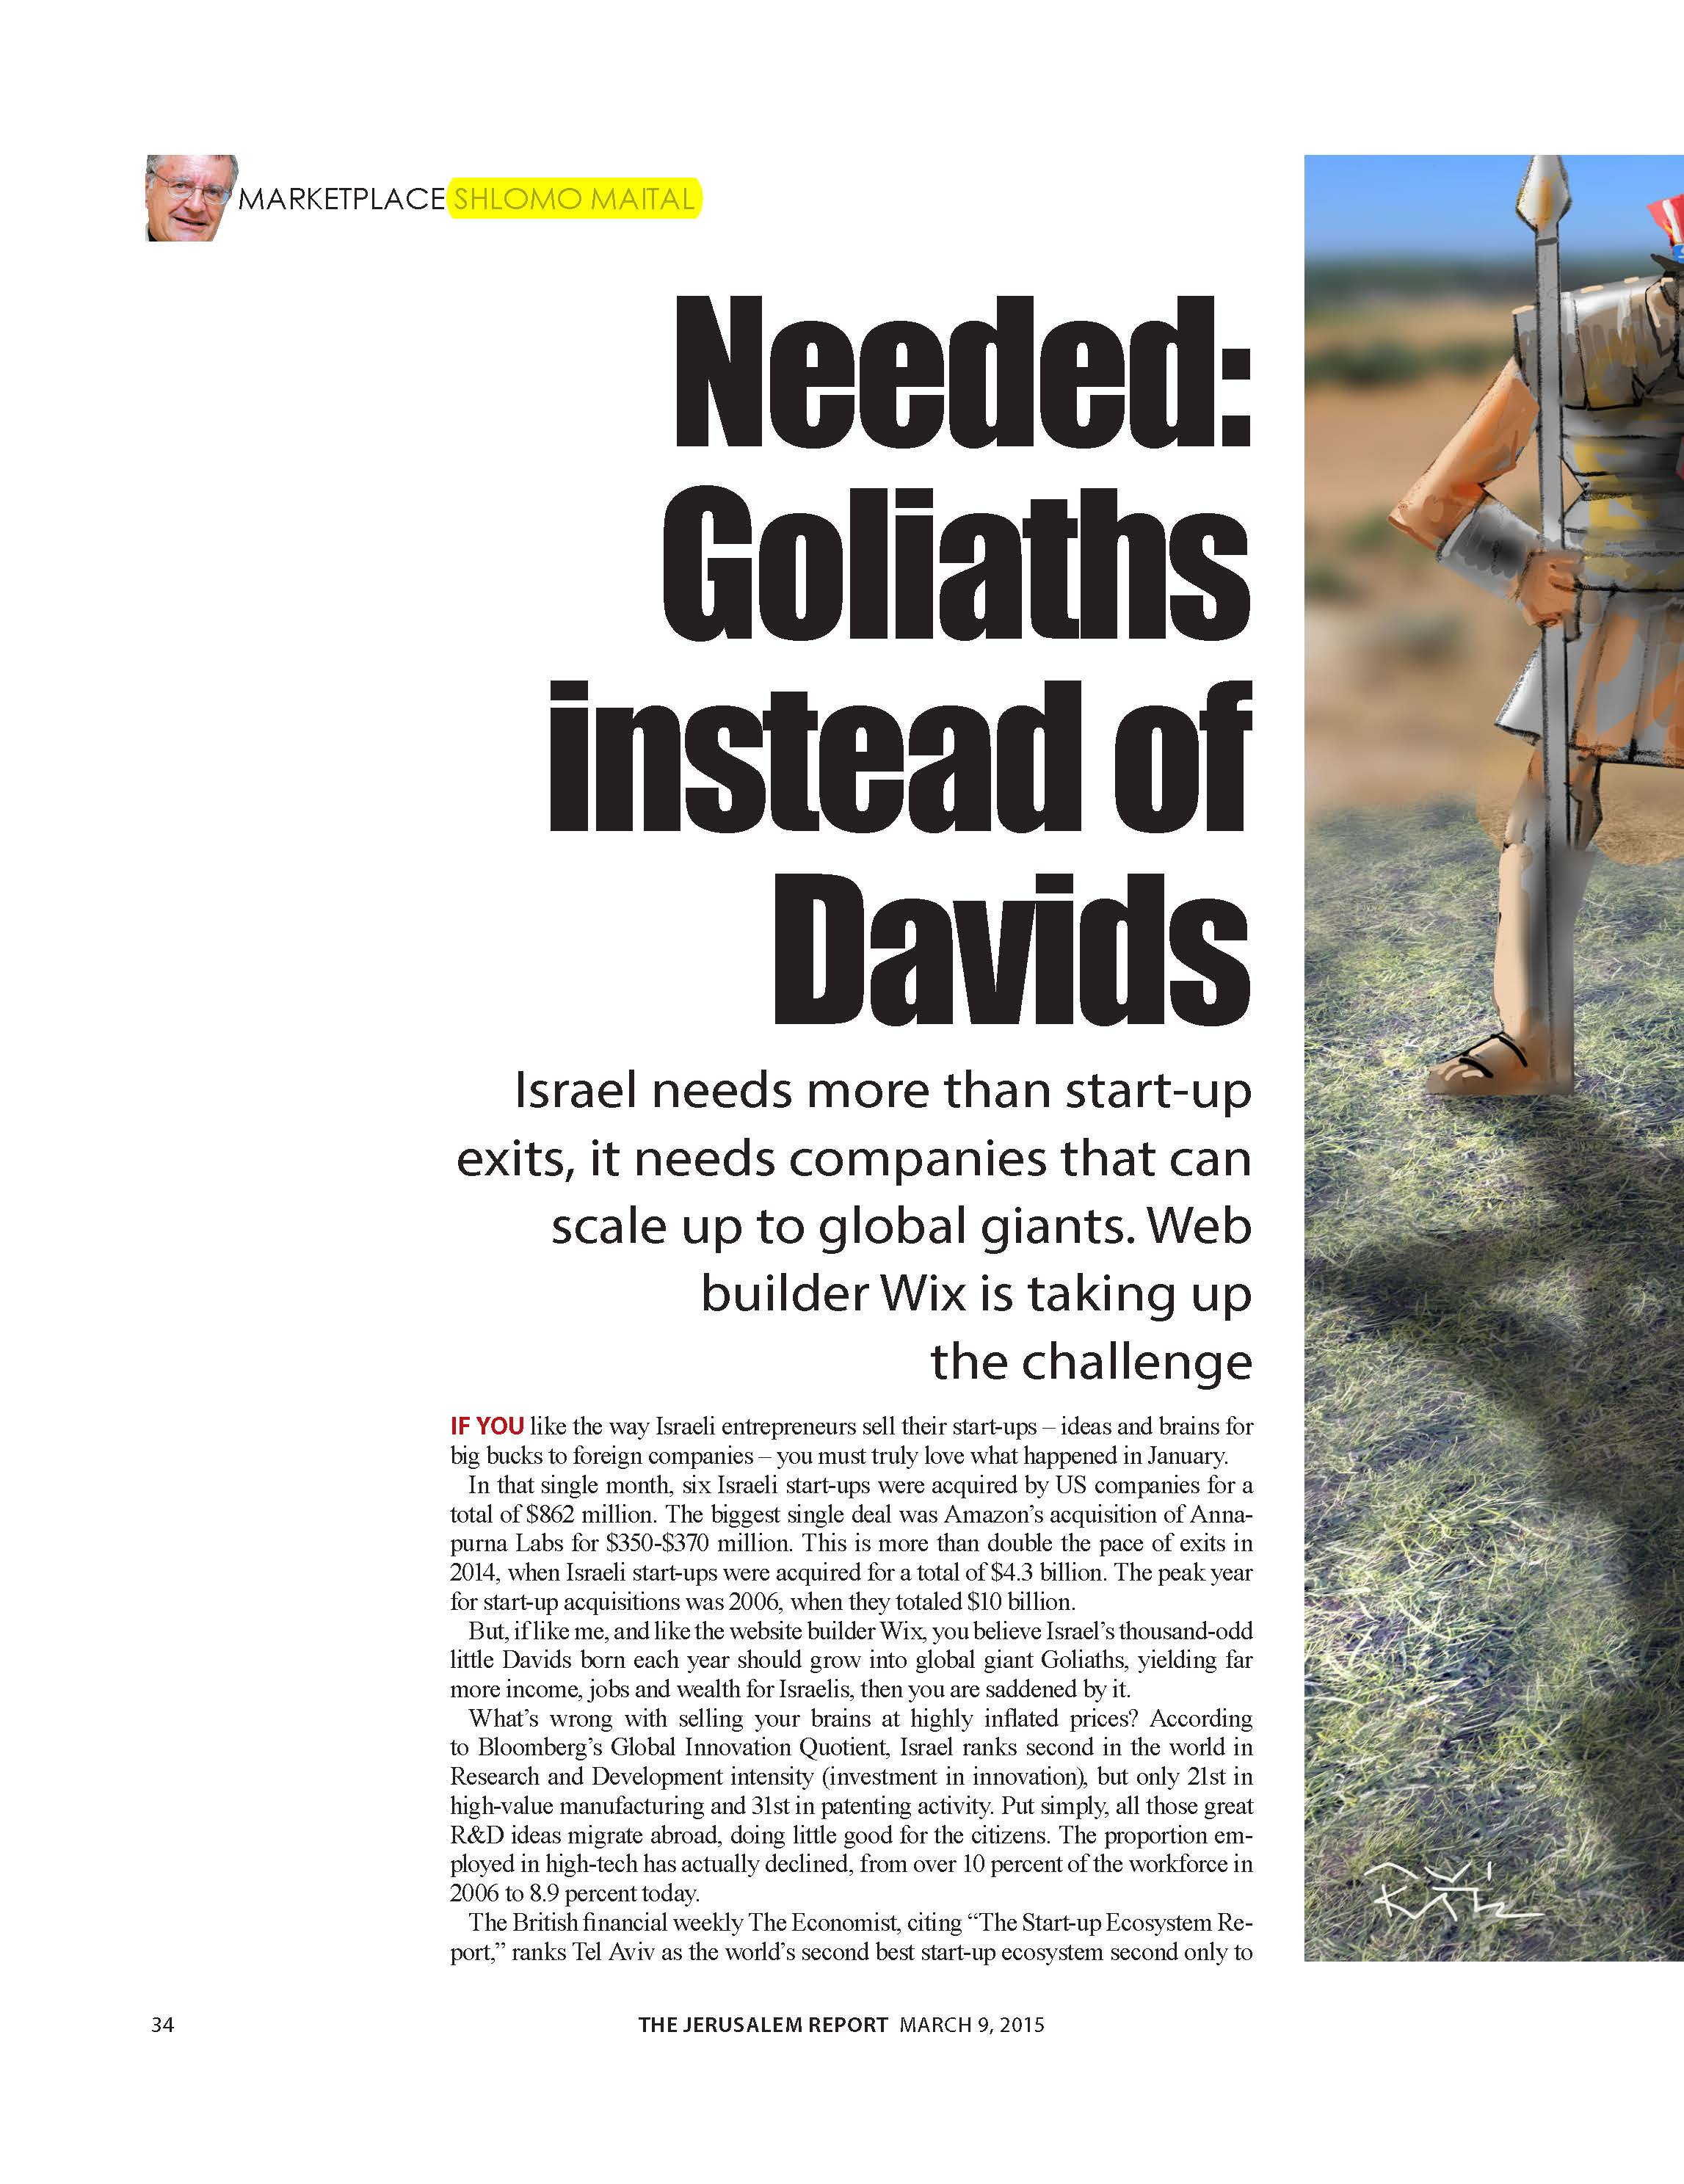 Needed: Goliaths instead of Davids